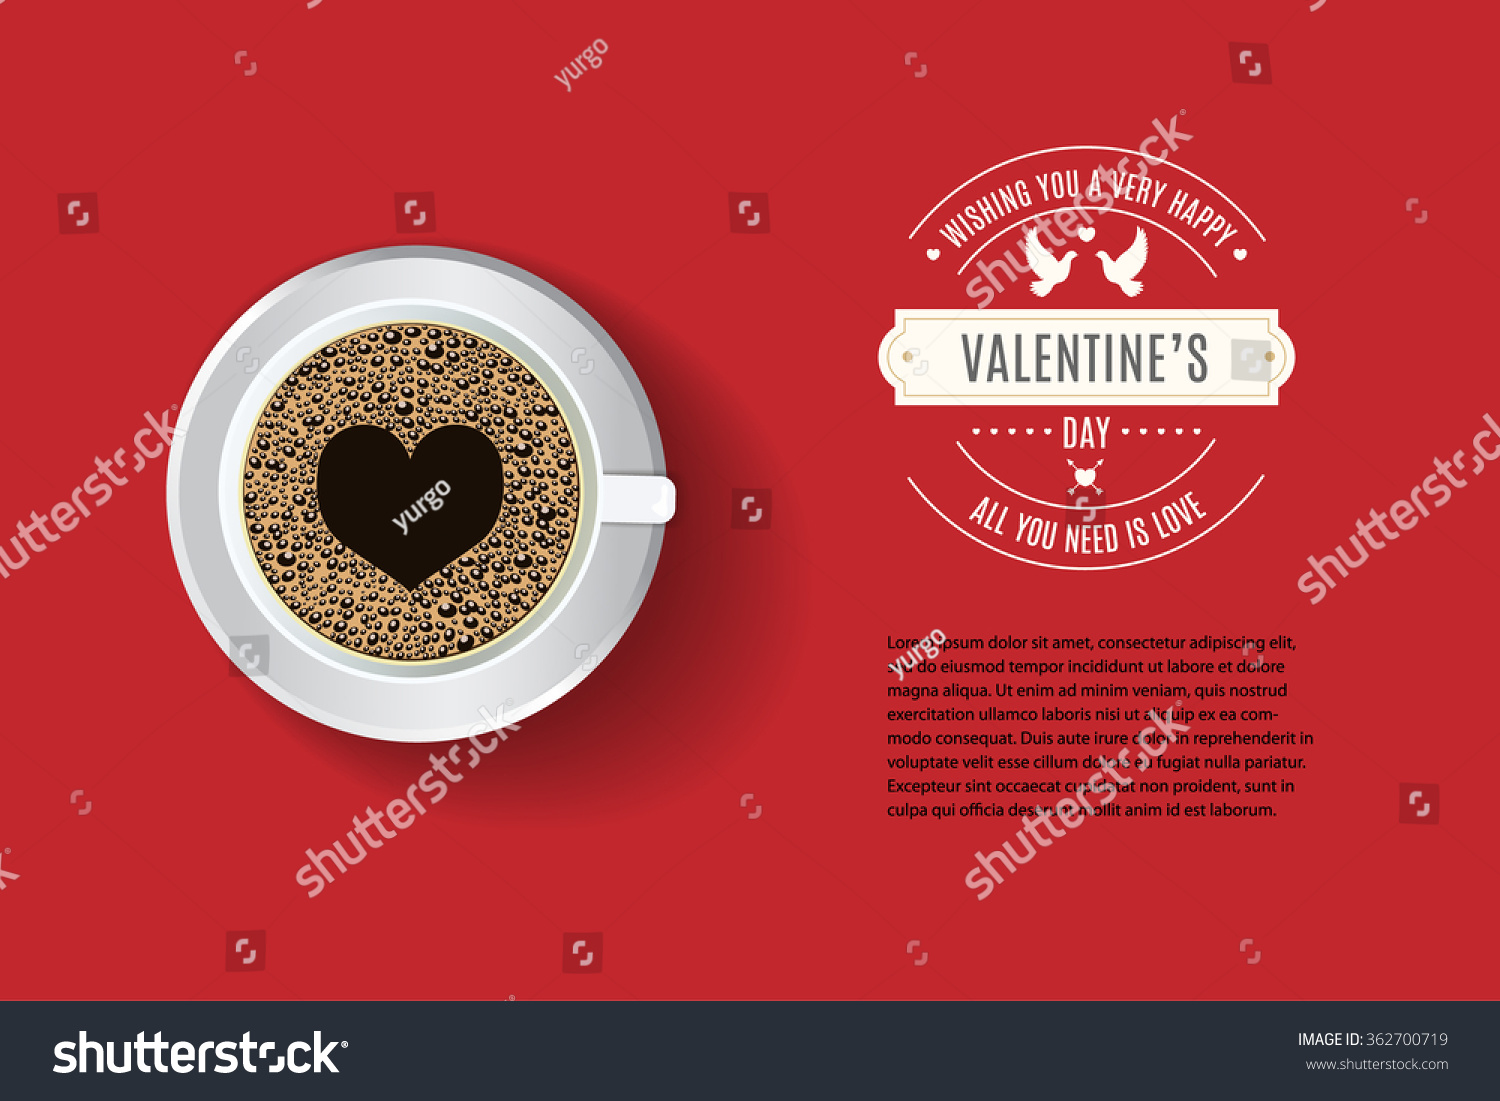 vector cafe menu flyer advertisement menu stock vector 362700719 vector cafe menu flyer advertisement menu template valentine s day greeitng sample text